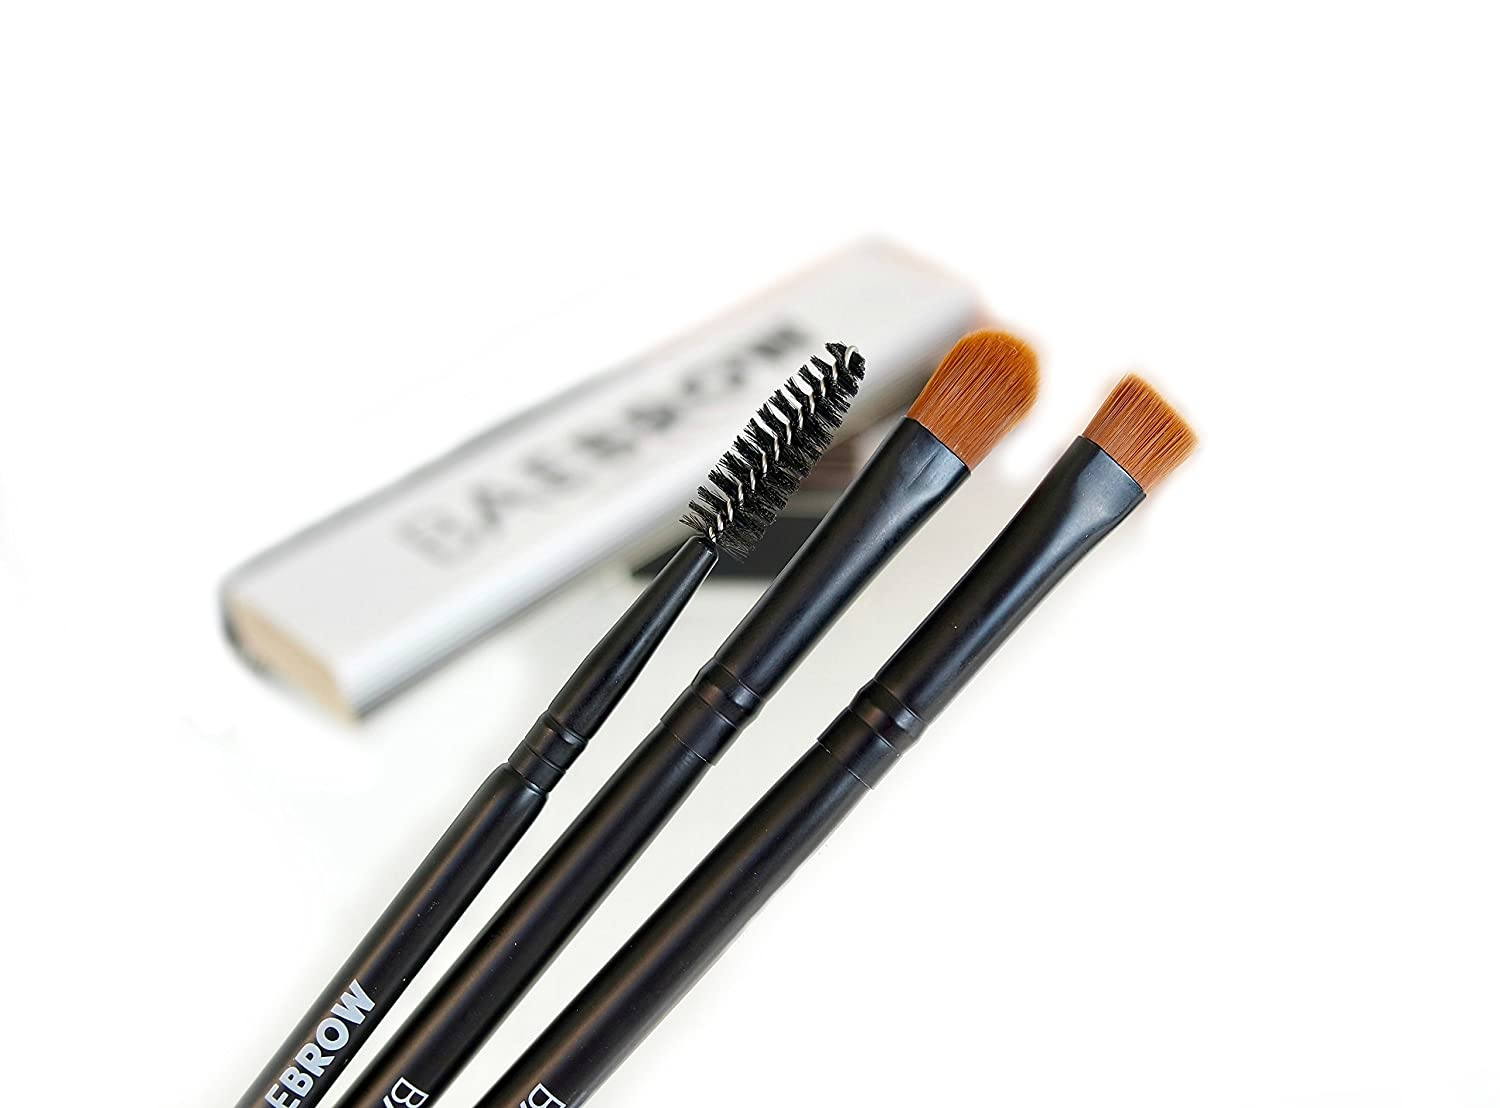 3 PIECE BAEBROW Professional Eyebrow Brush Set